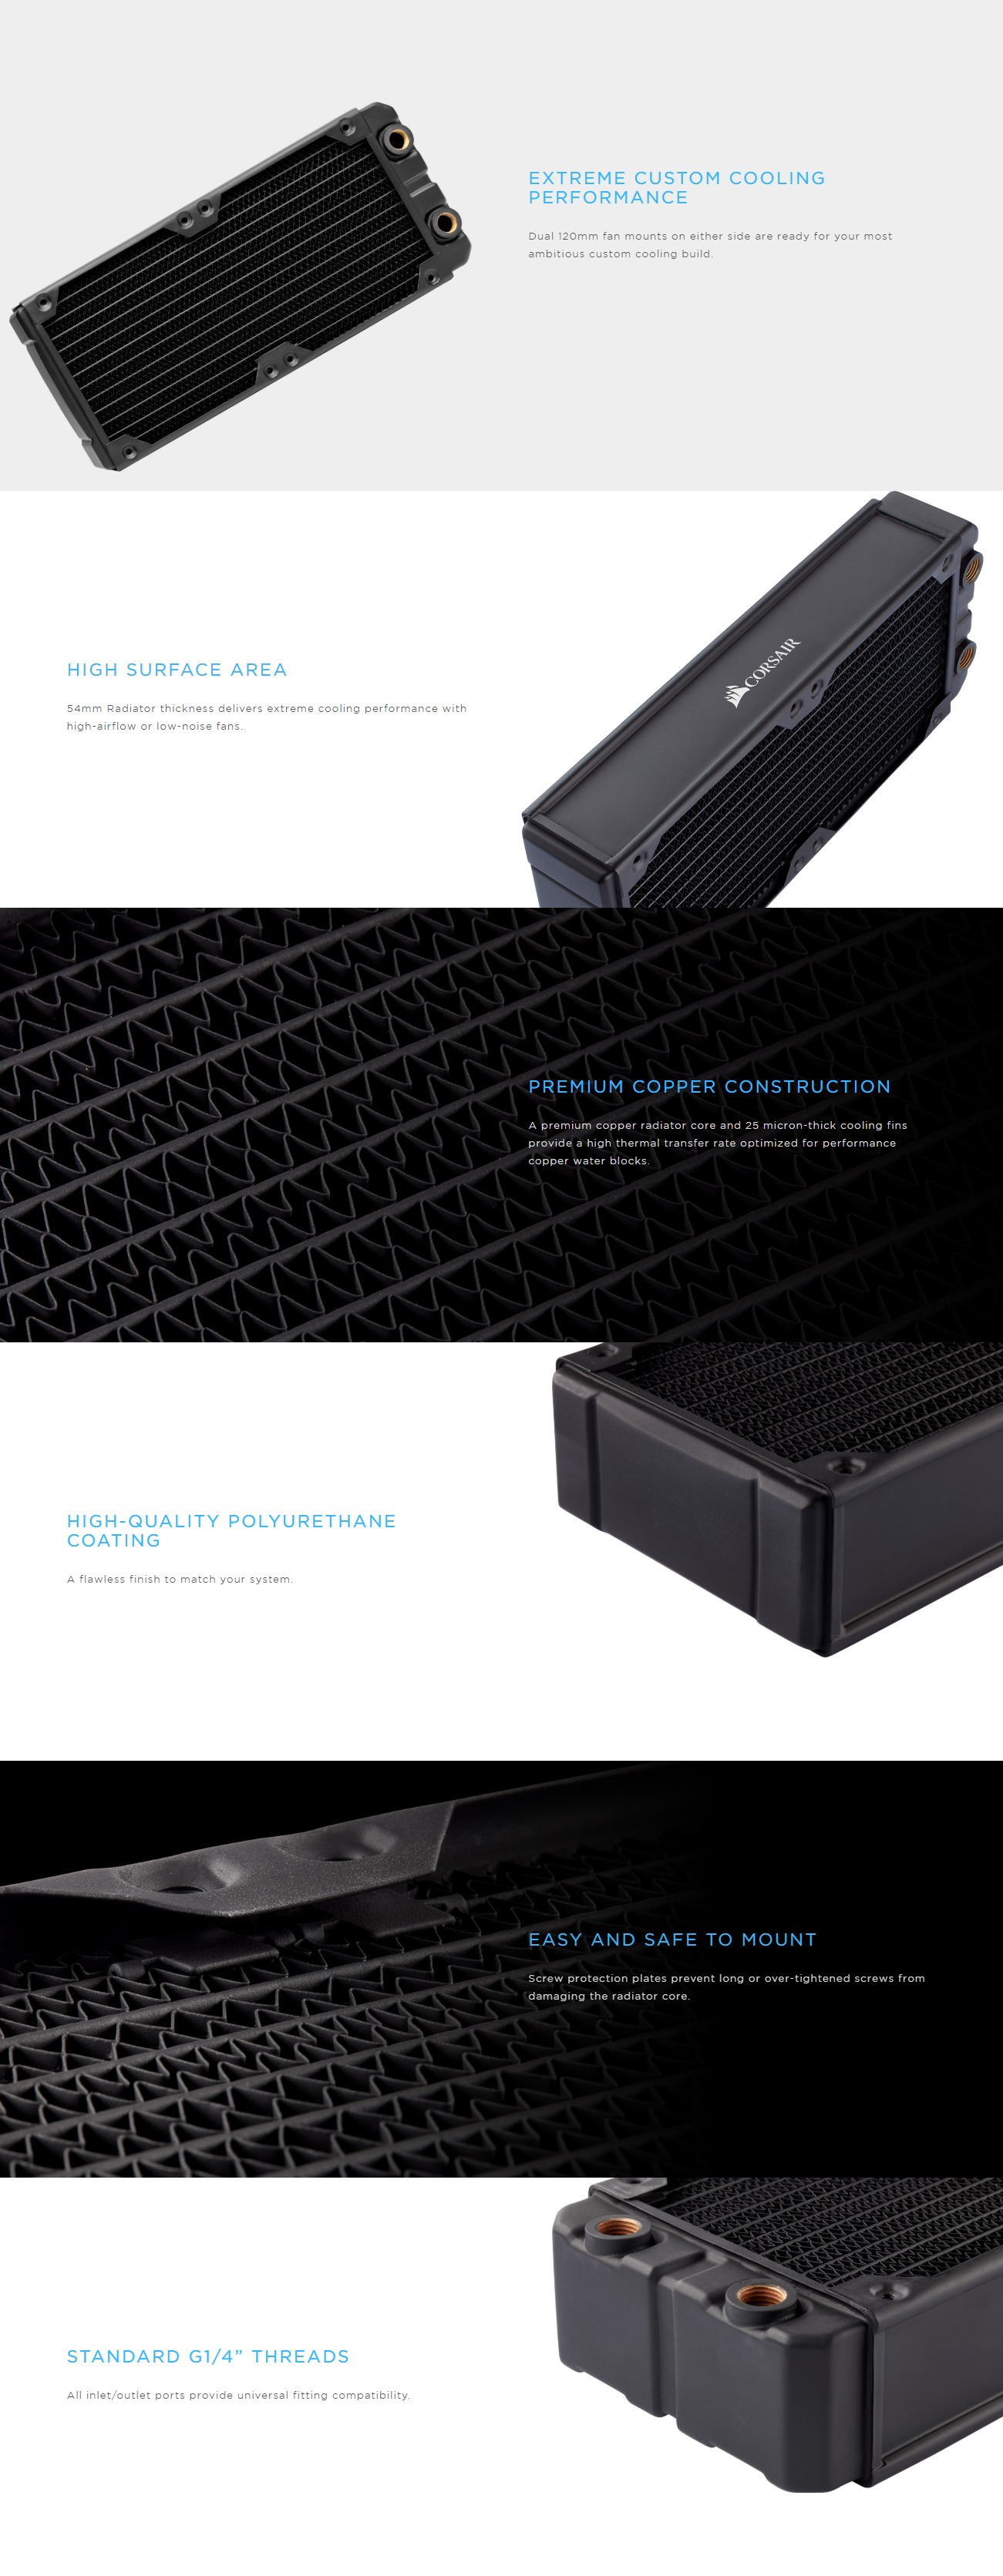 A large marketing image providing additional information about the product Corsair Hydro X Series XR7 480mm Radiator - Additional alt info not provided